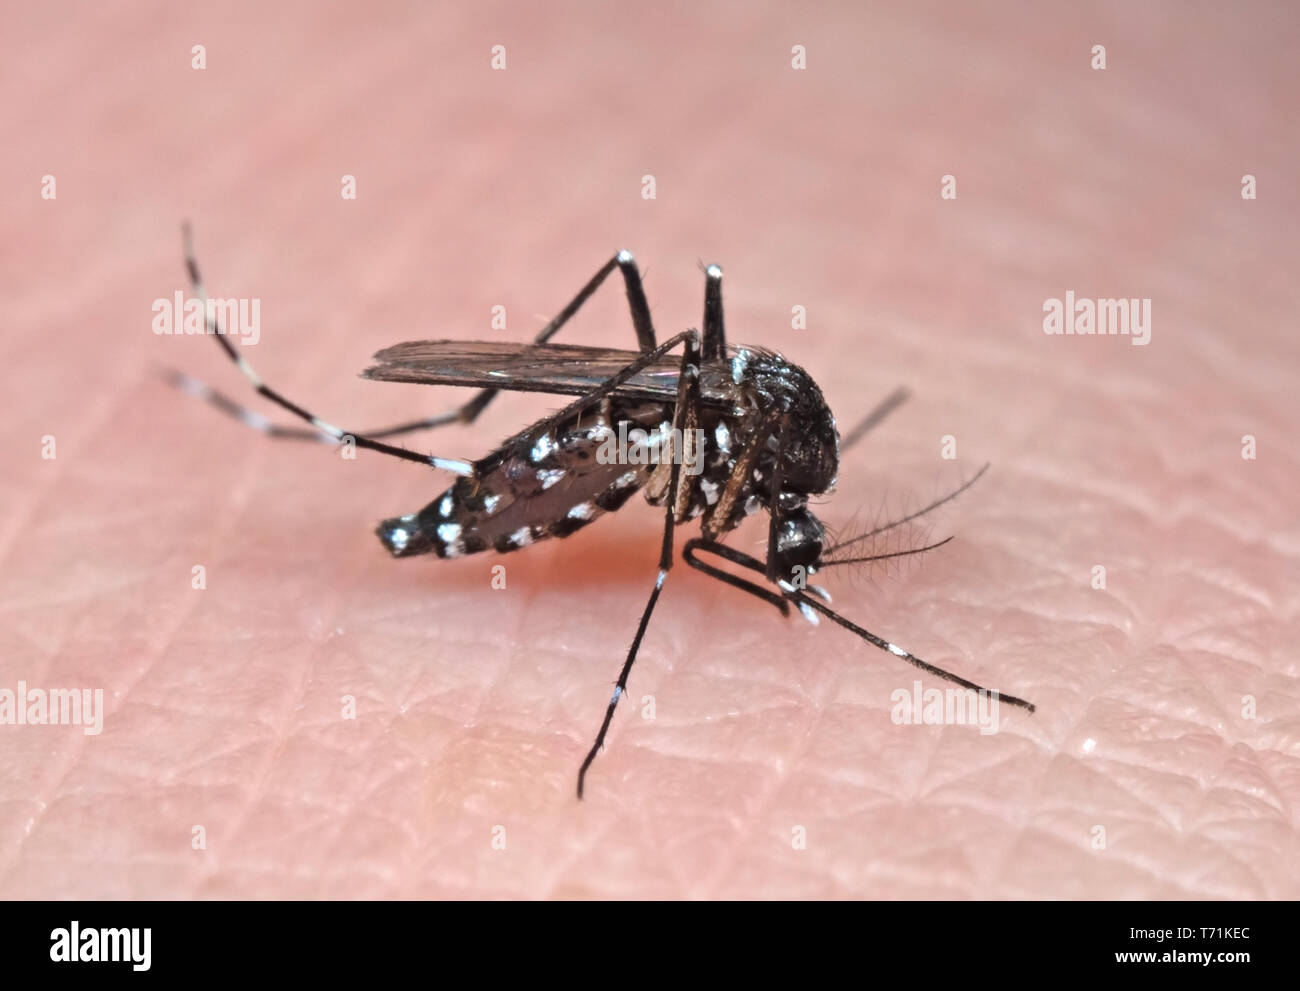 Macro Photography of Yellow Fever Mosquito Sucking Blood on Human Skin - Stock Image